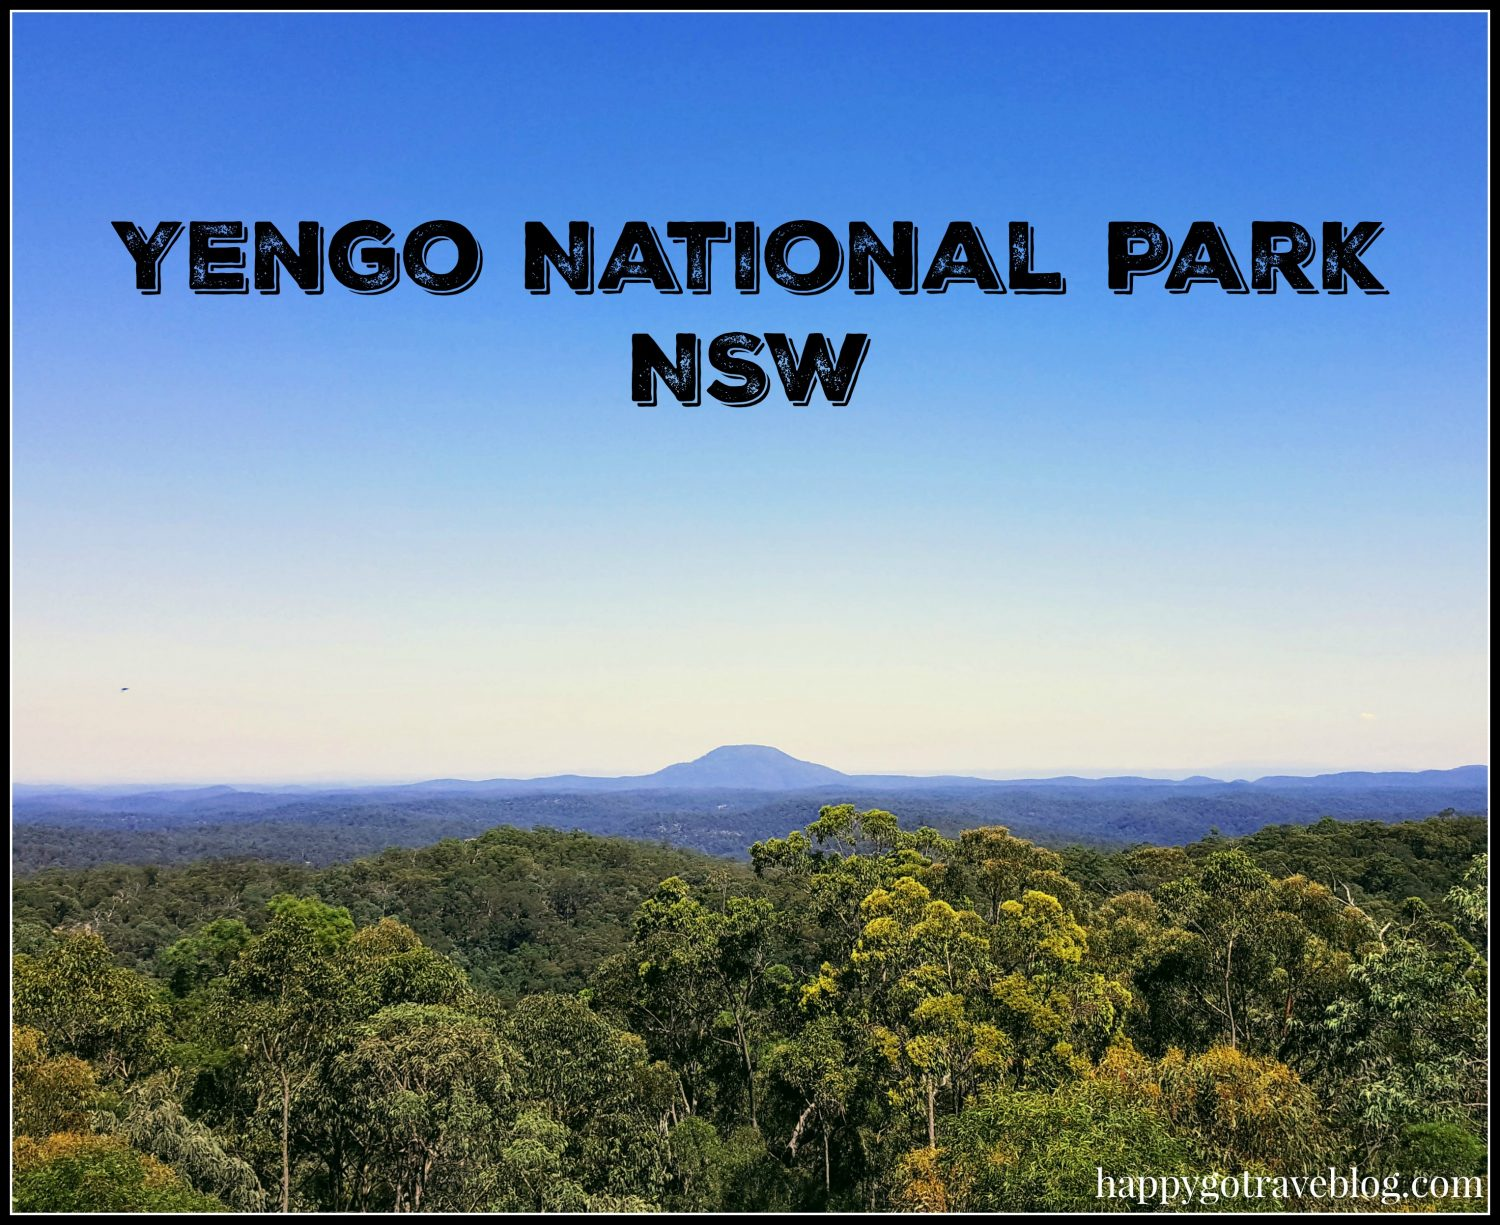 Yengo National Park - Finchley lookout view of the mountains